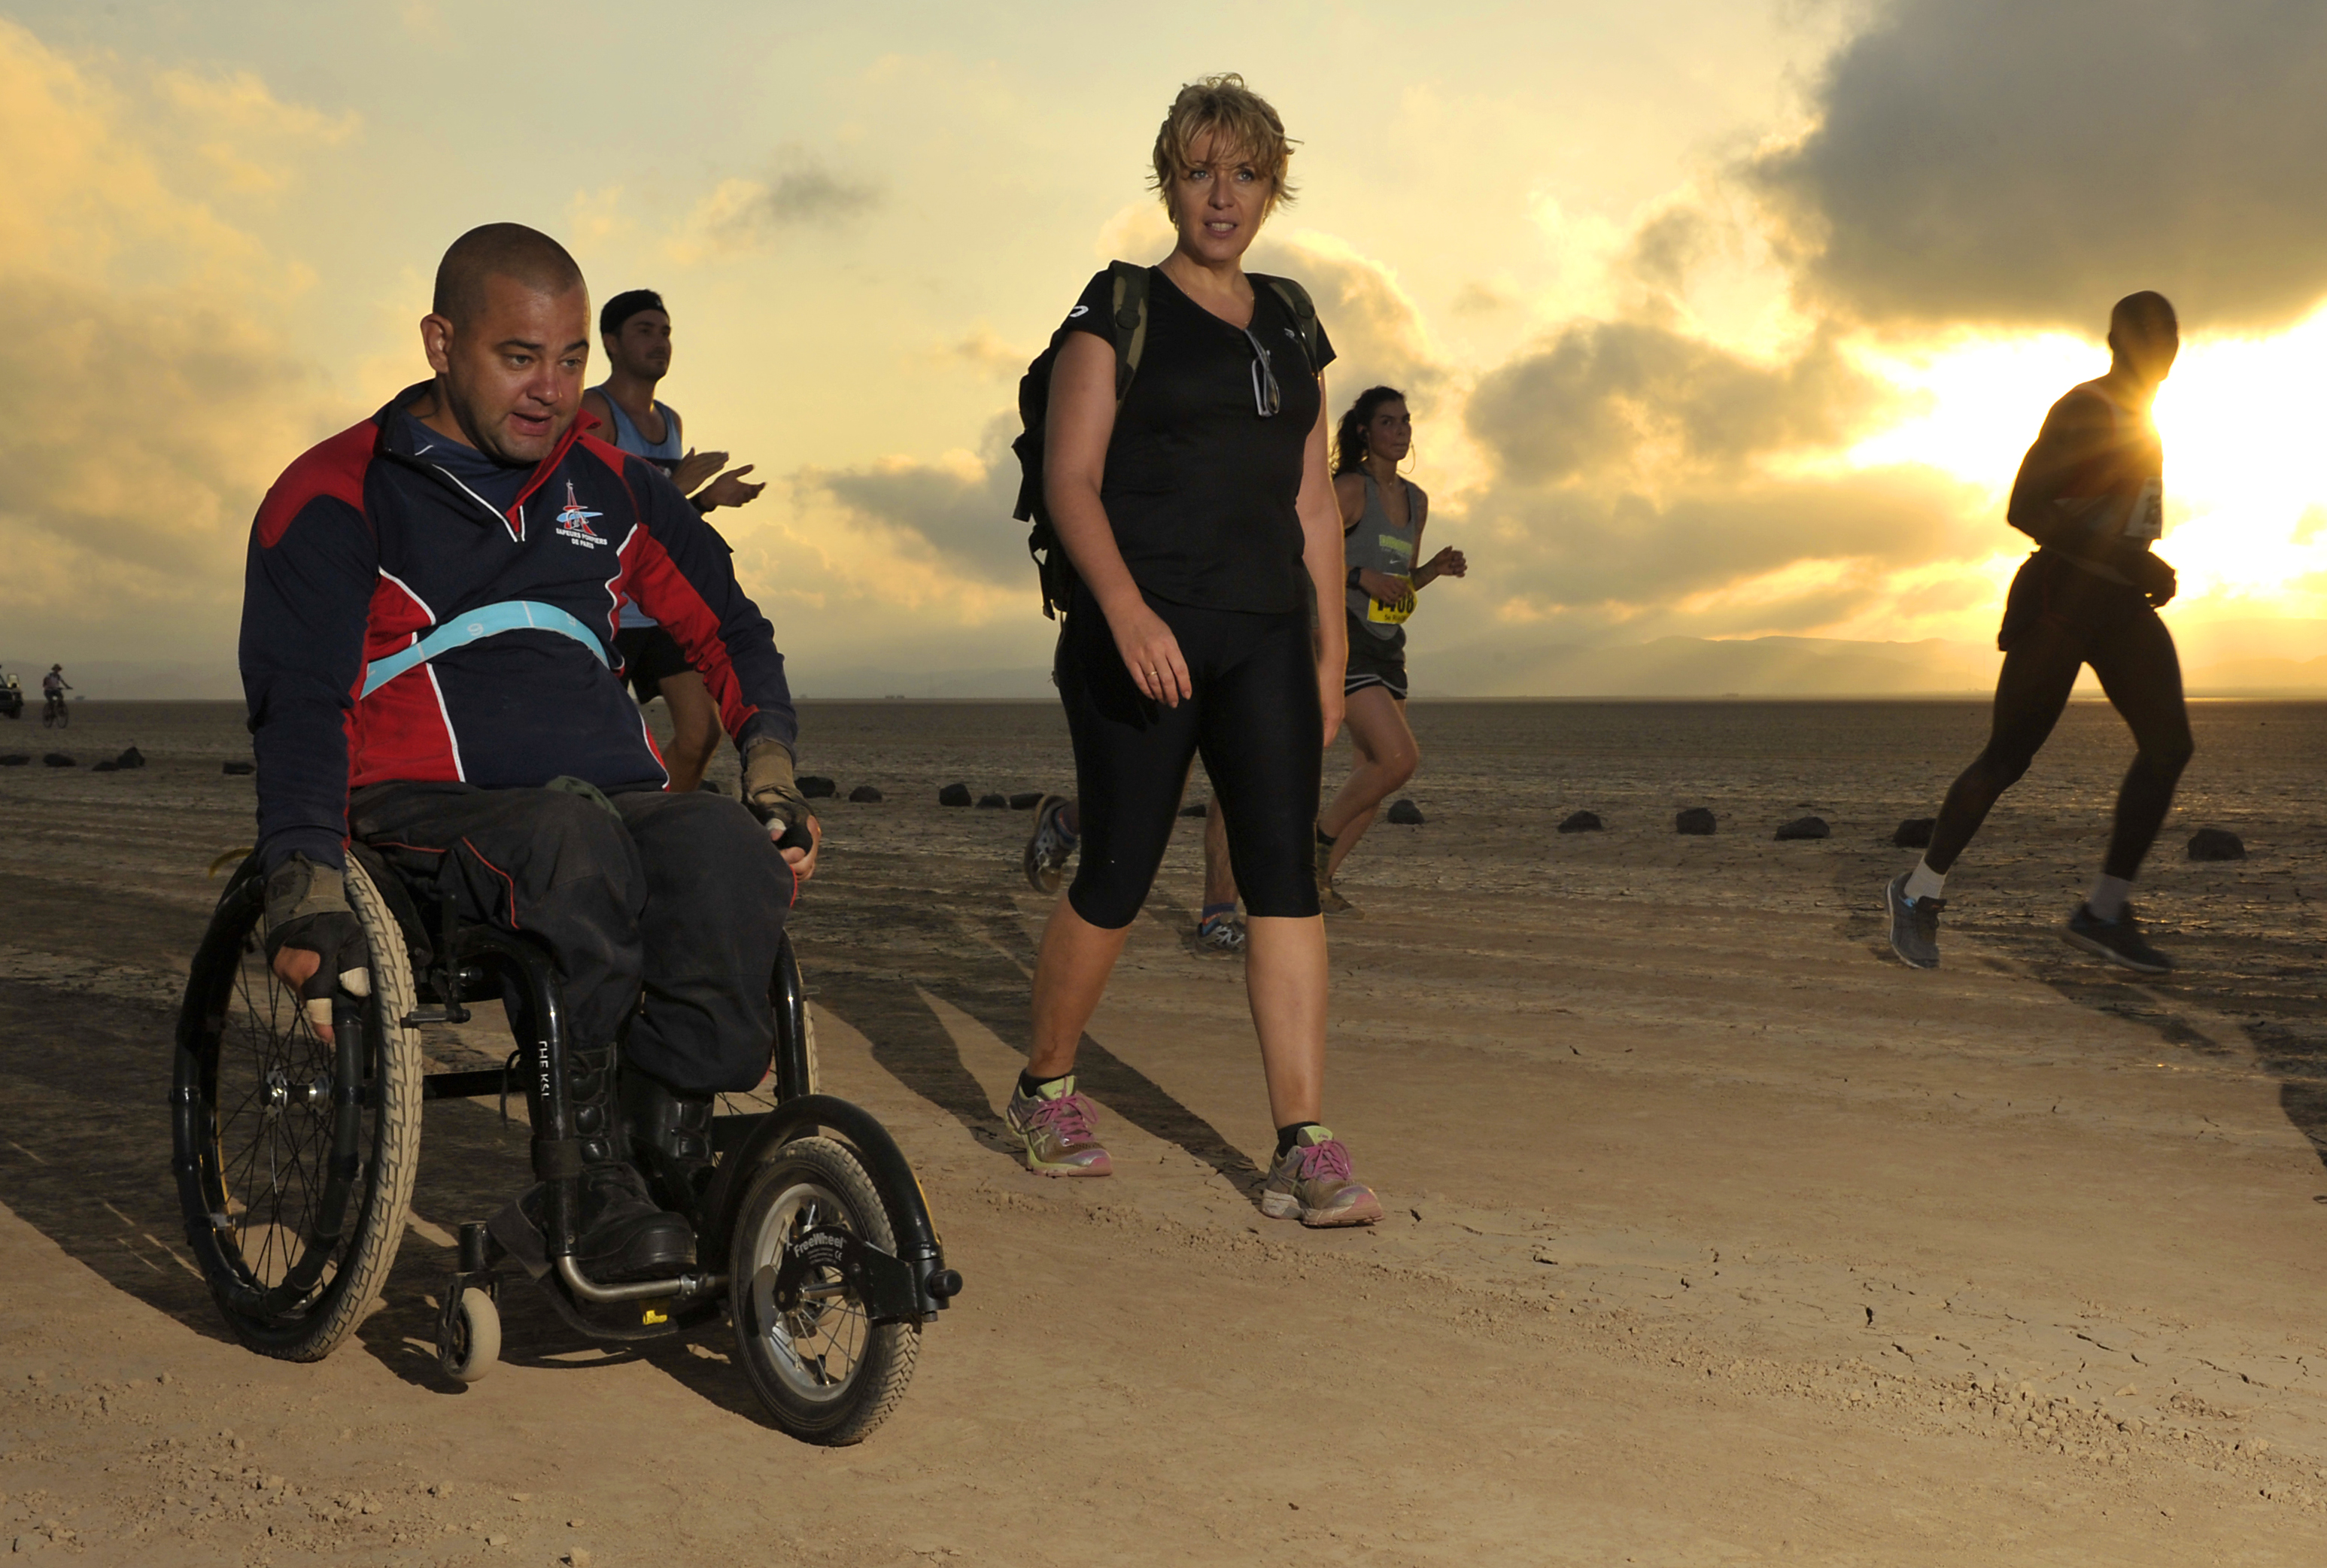 French Army Sgt. Vincent Dorival, Paris Fire Brigade, treks across the Grand Bara Desert during the Annual Grand Bara 15K race Dec. 17, 2015, in Djibouti. Dorival was injured while on duty and is paralyzed from the chest down. (U.S. Air Force photo by Tech. Sgt. Dan DeCook)